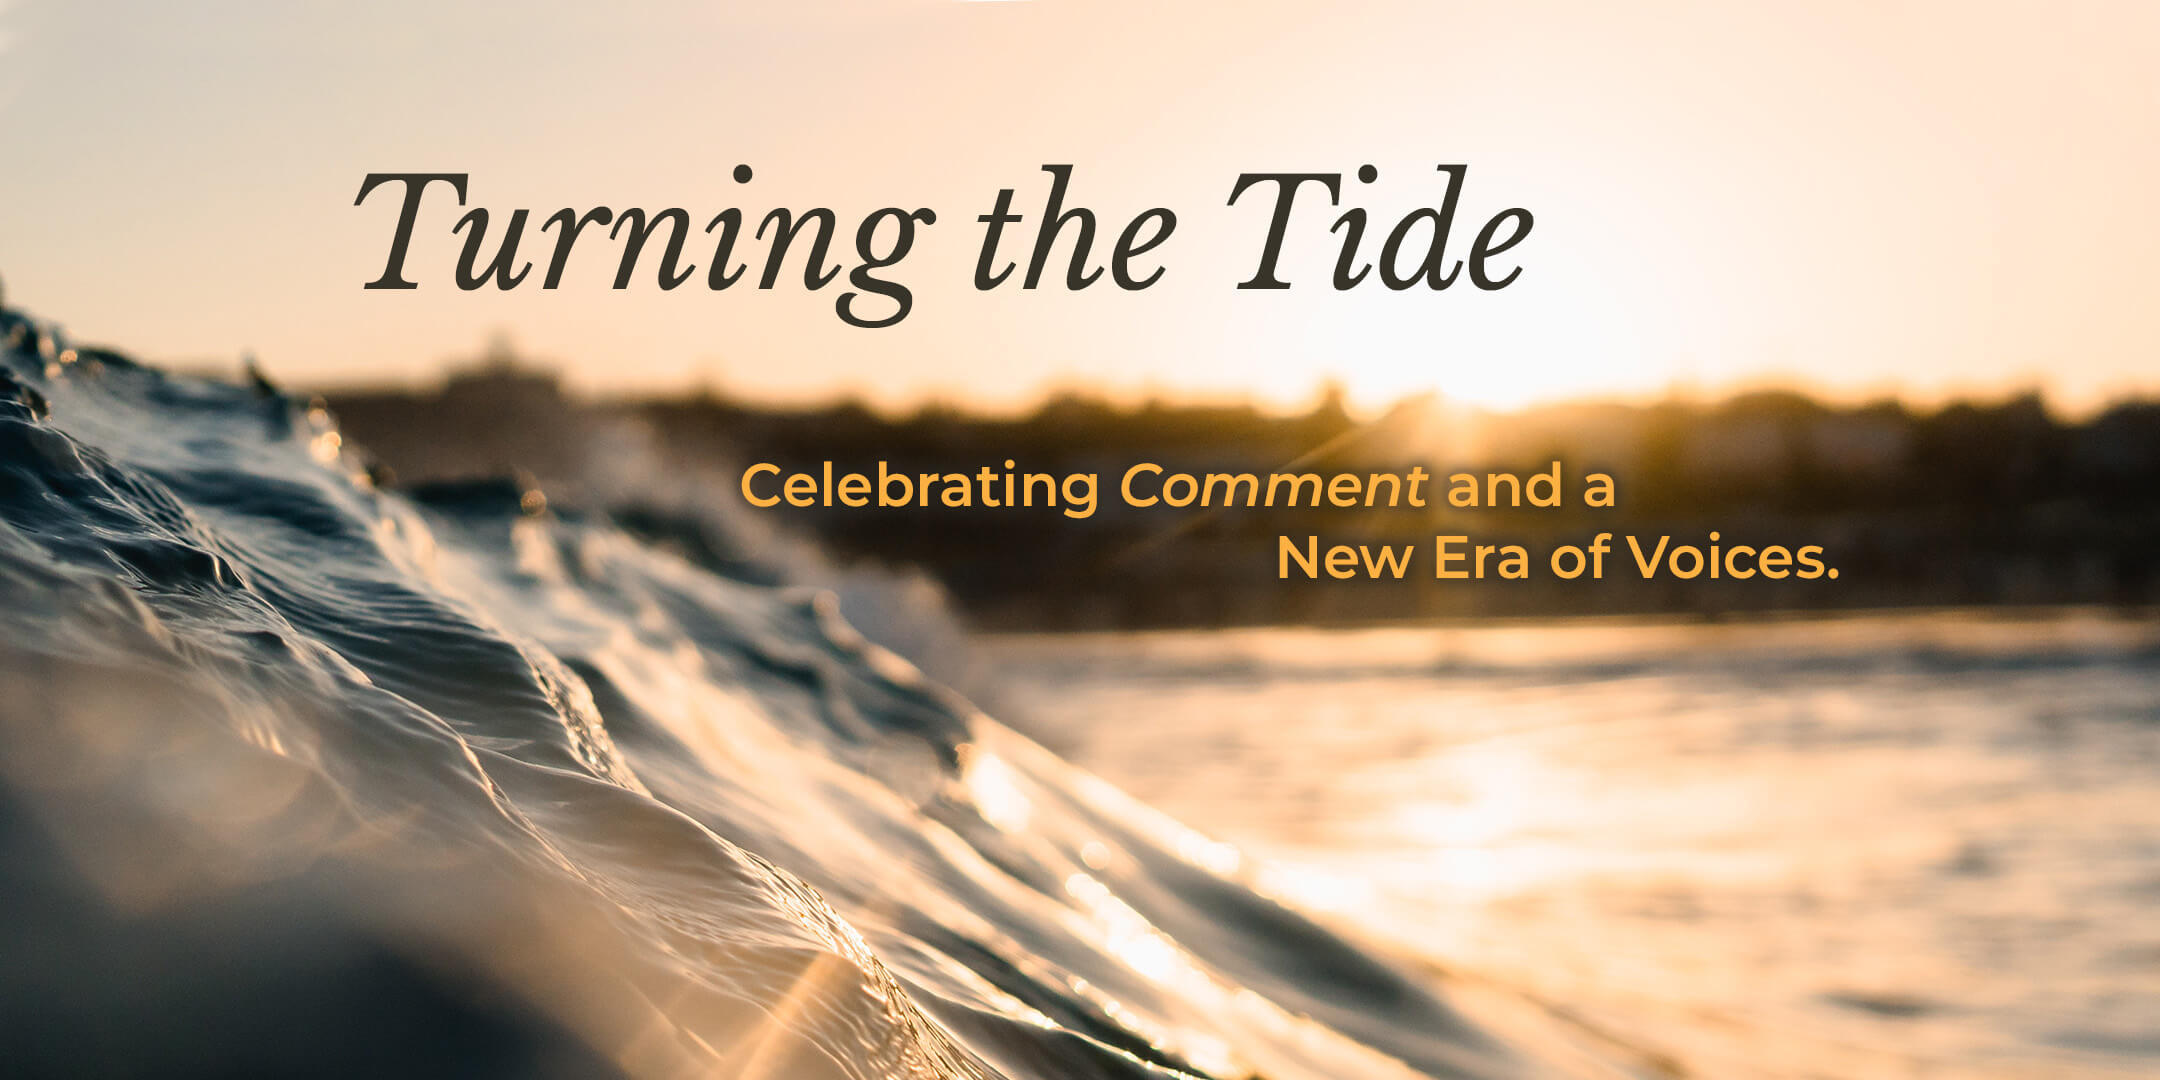 Turning the Tide - Celebrating Comment and a New Era of Voices